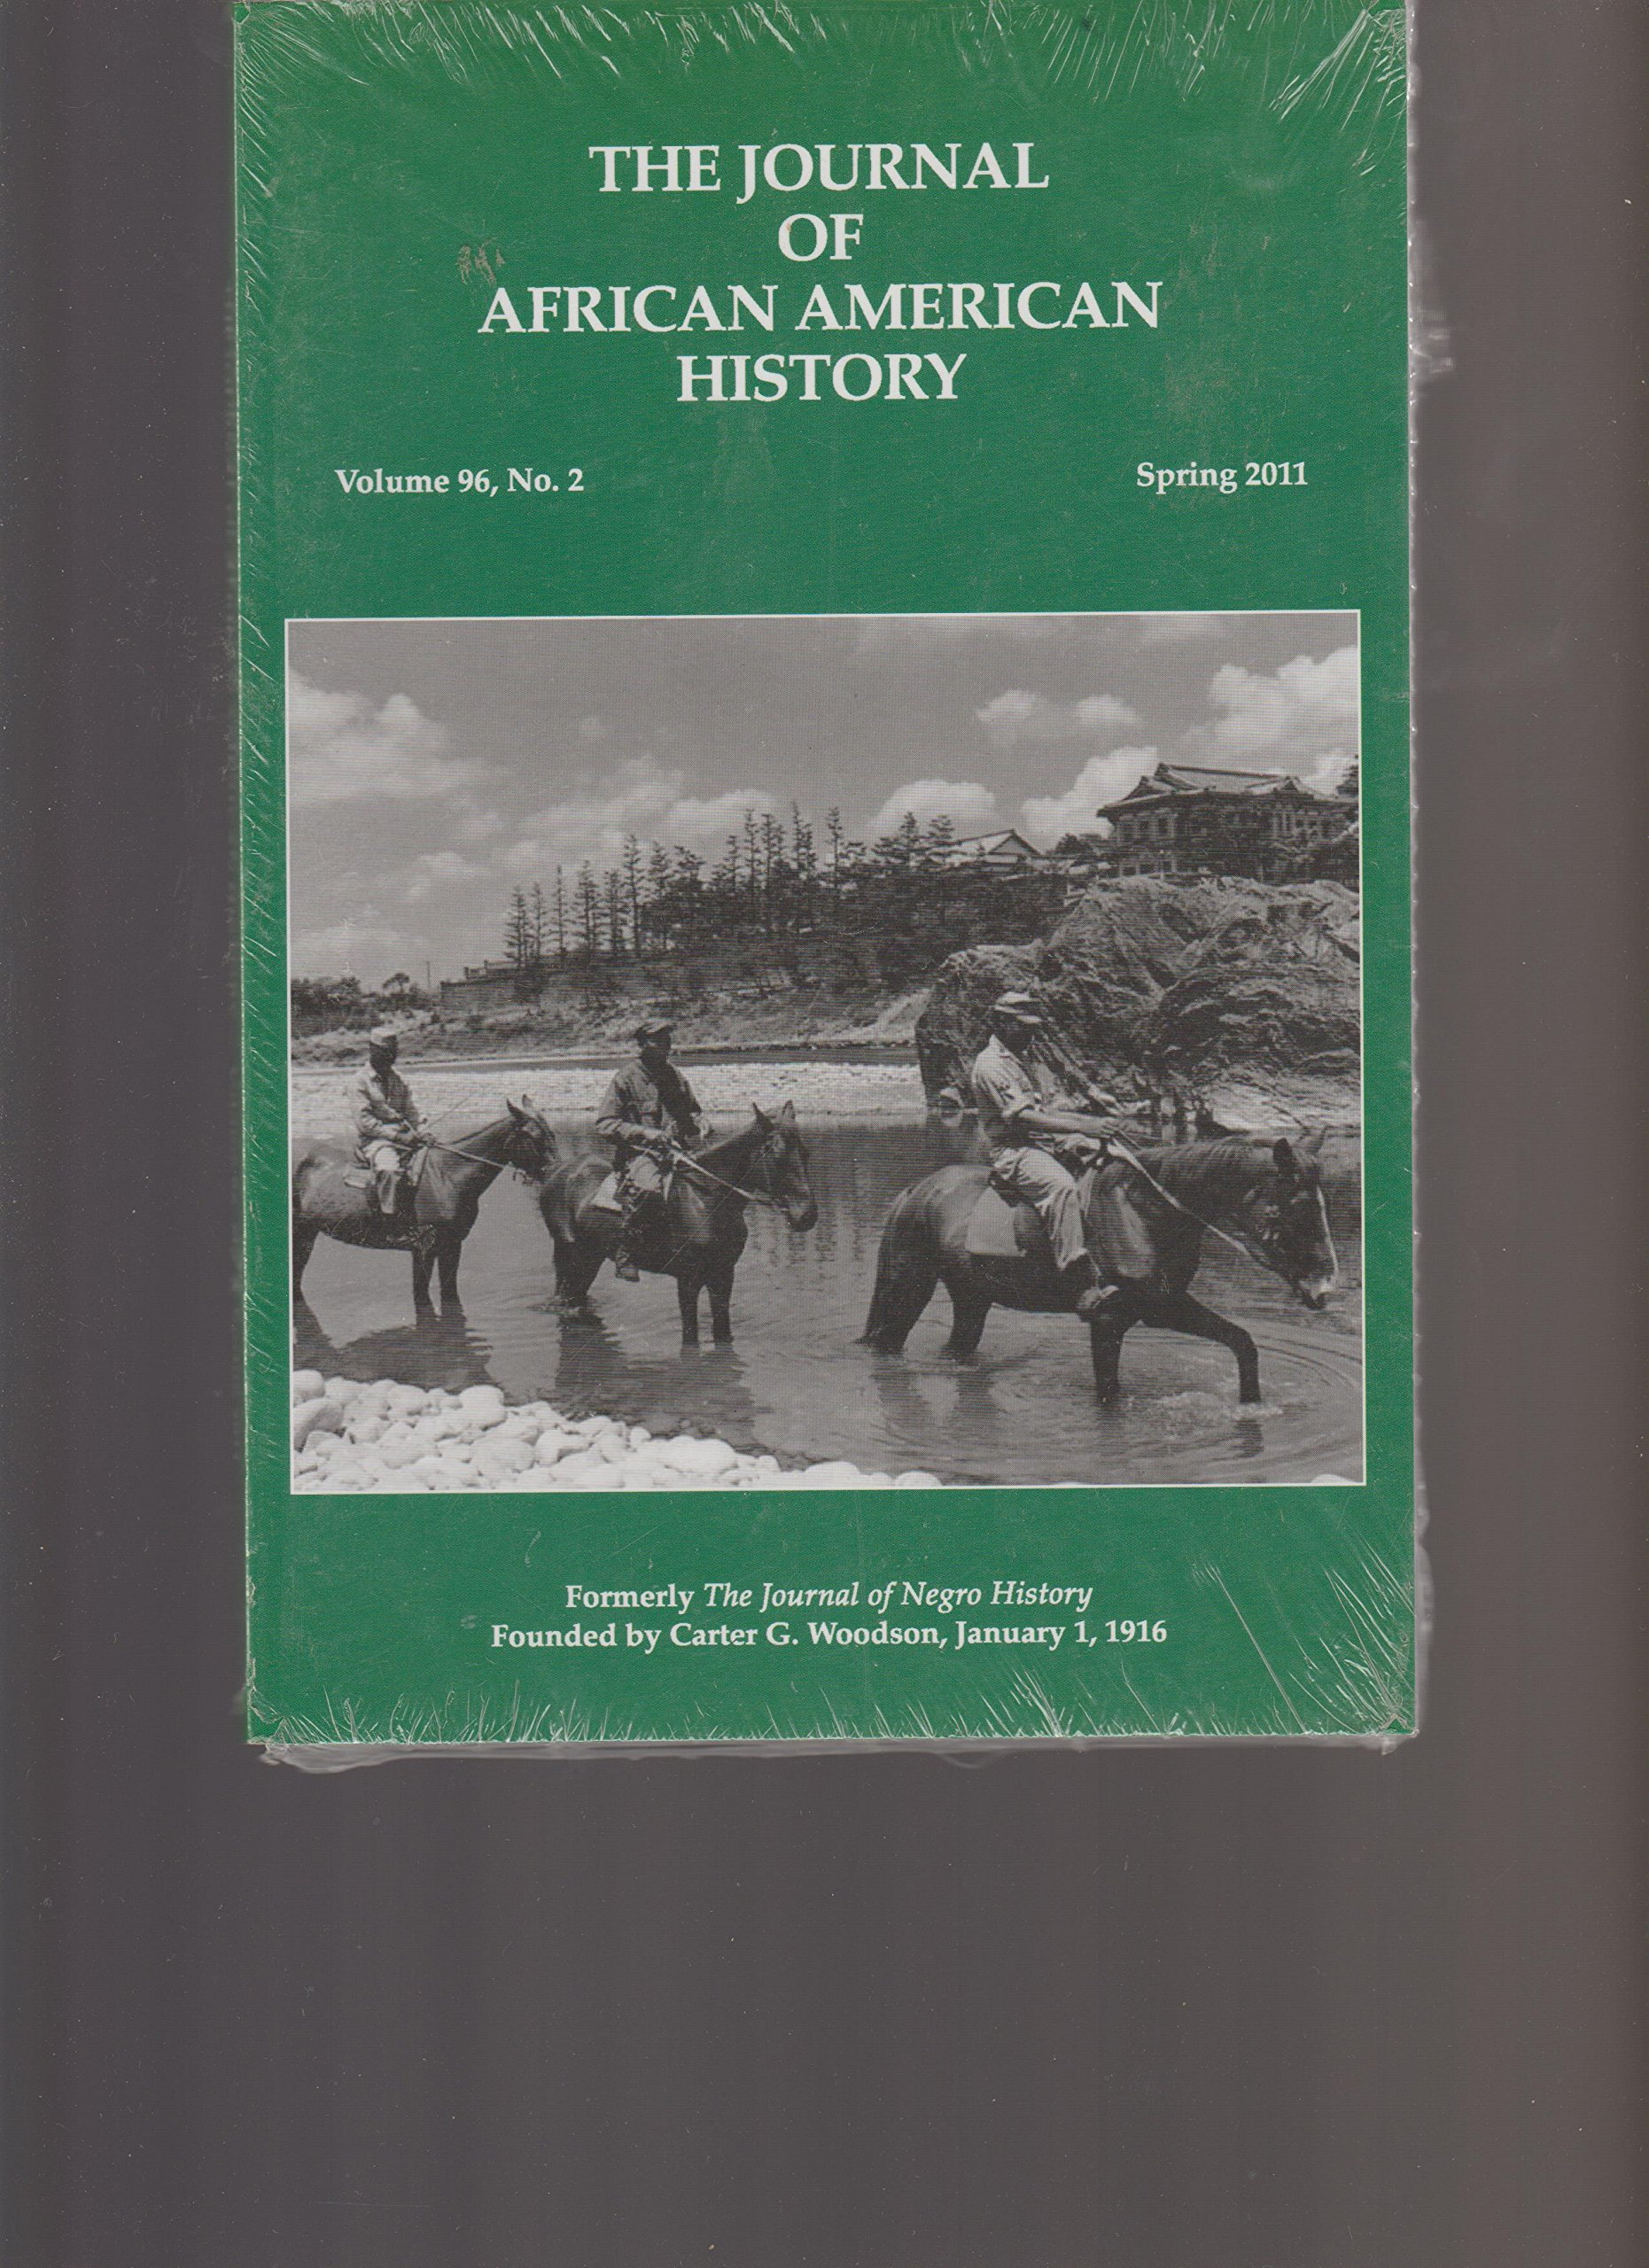 THE JOURNAL OF AFRICAN AMERICAN HISTORY, SPRING 2011 ebook